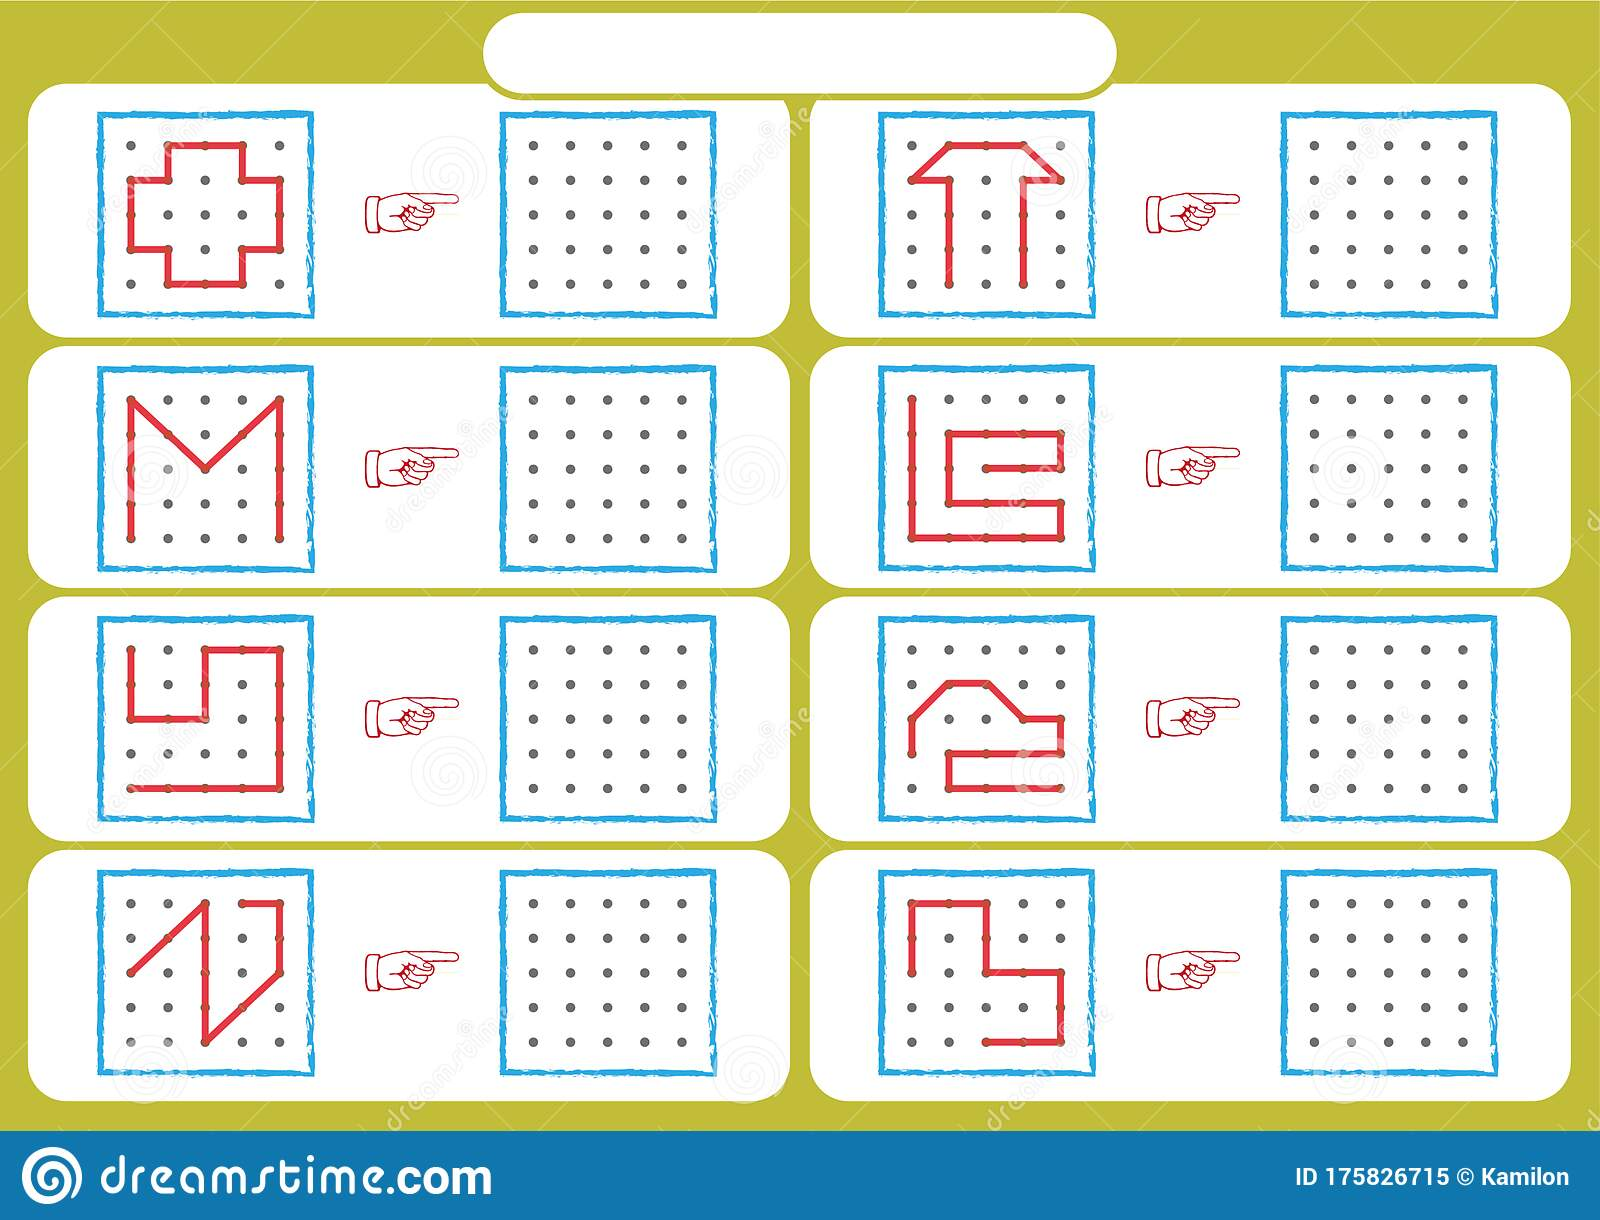 Worksheet For Preschool Kids Dot To Dot Copy Practice Copy The Shapes Visual Perception Activities Stock Vector Illustration Of Child Activities 175826715